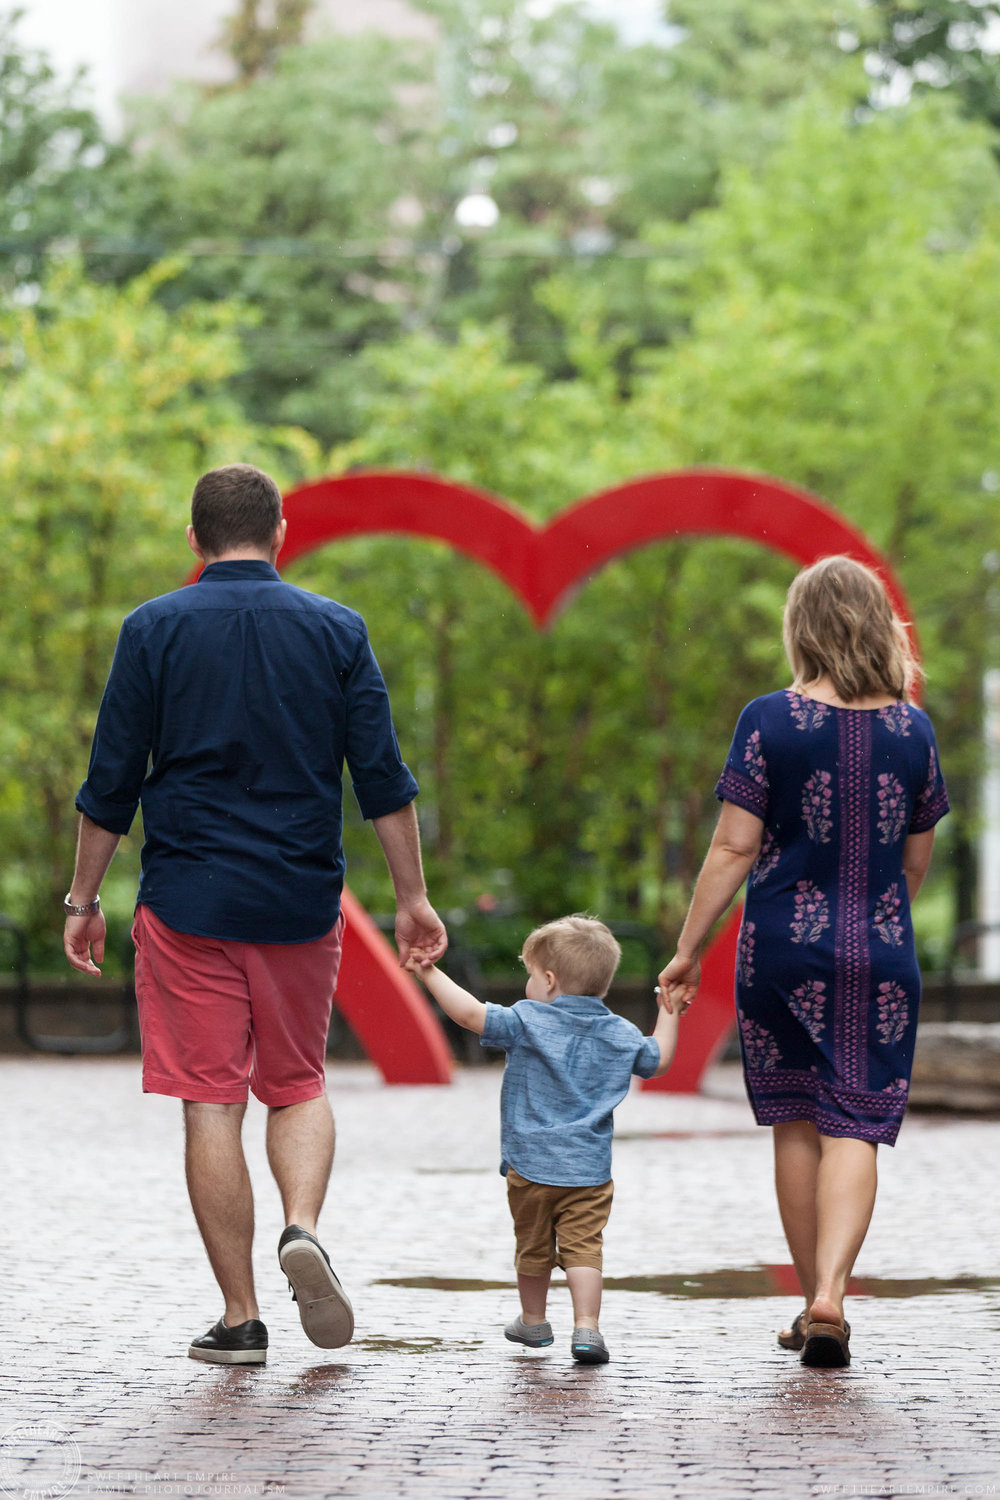 07_Family walking towards heart sculpture in distillery district.jpg